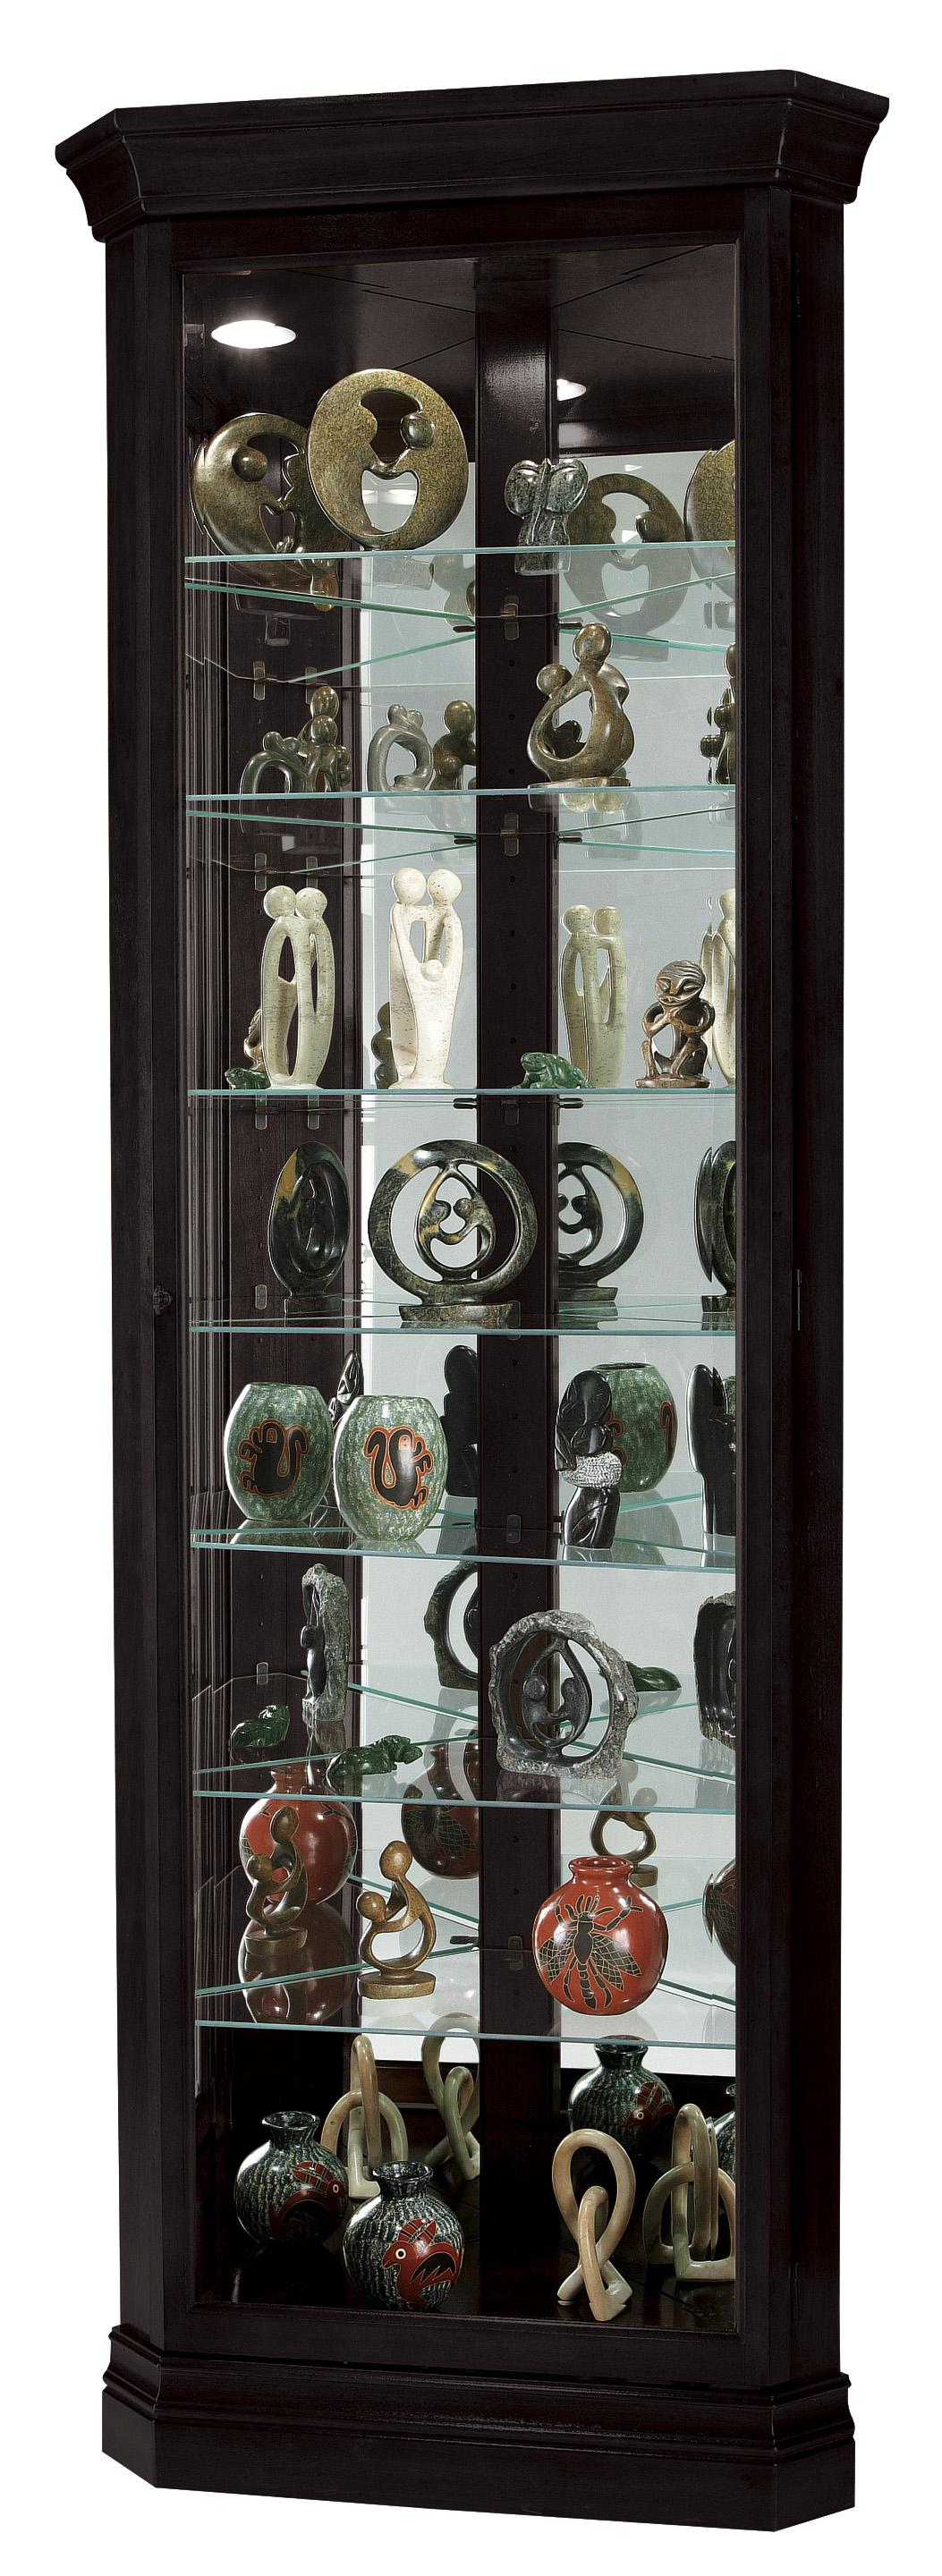 Howard Miller Curios Duane Display Cabinet - Item Number: 680-487